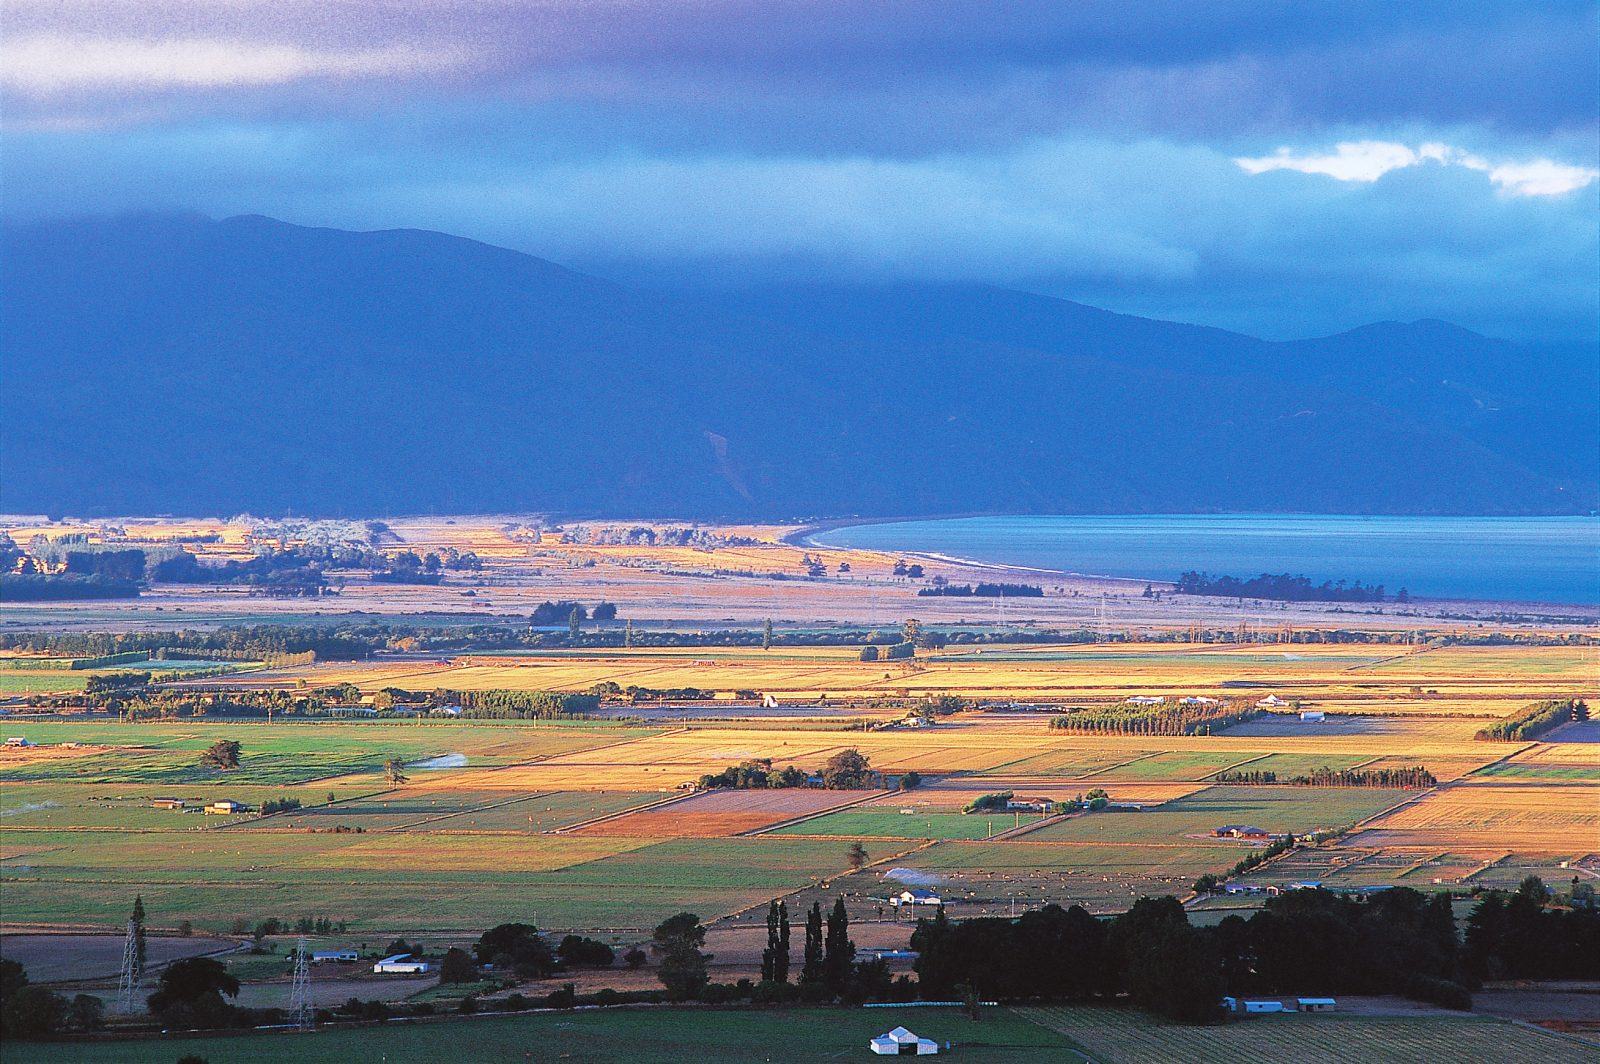 Clouds often gather round the hills behind POrt Underwood and the Marlborough Sounds, but to the frustration of locals they rarely produce rain in the Wairau valley. The only green fields in this view are those receiving irrigation